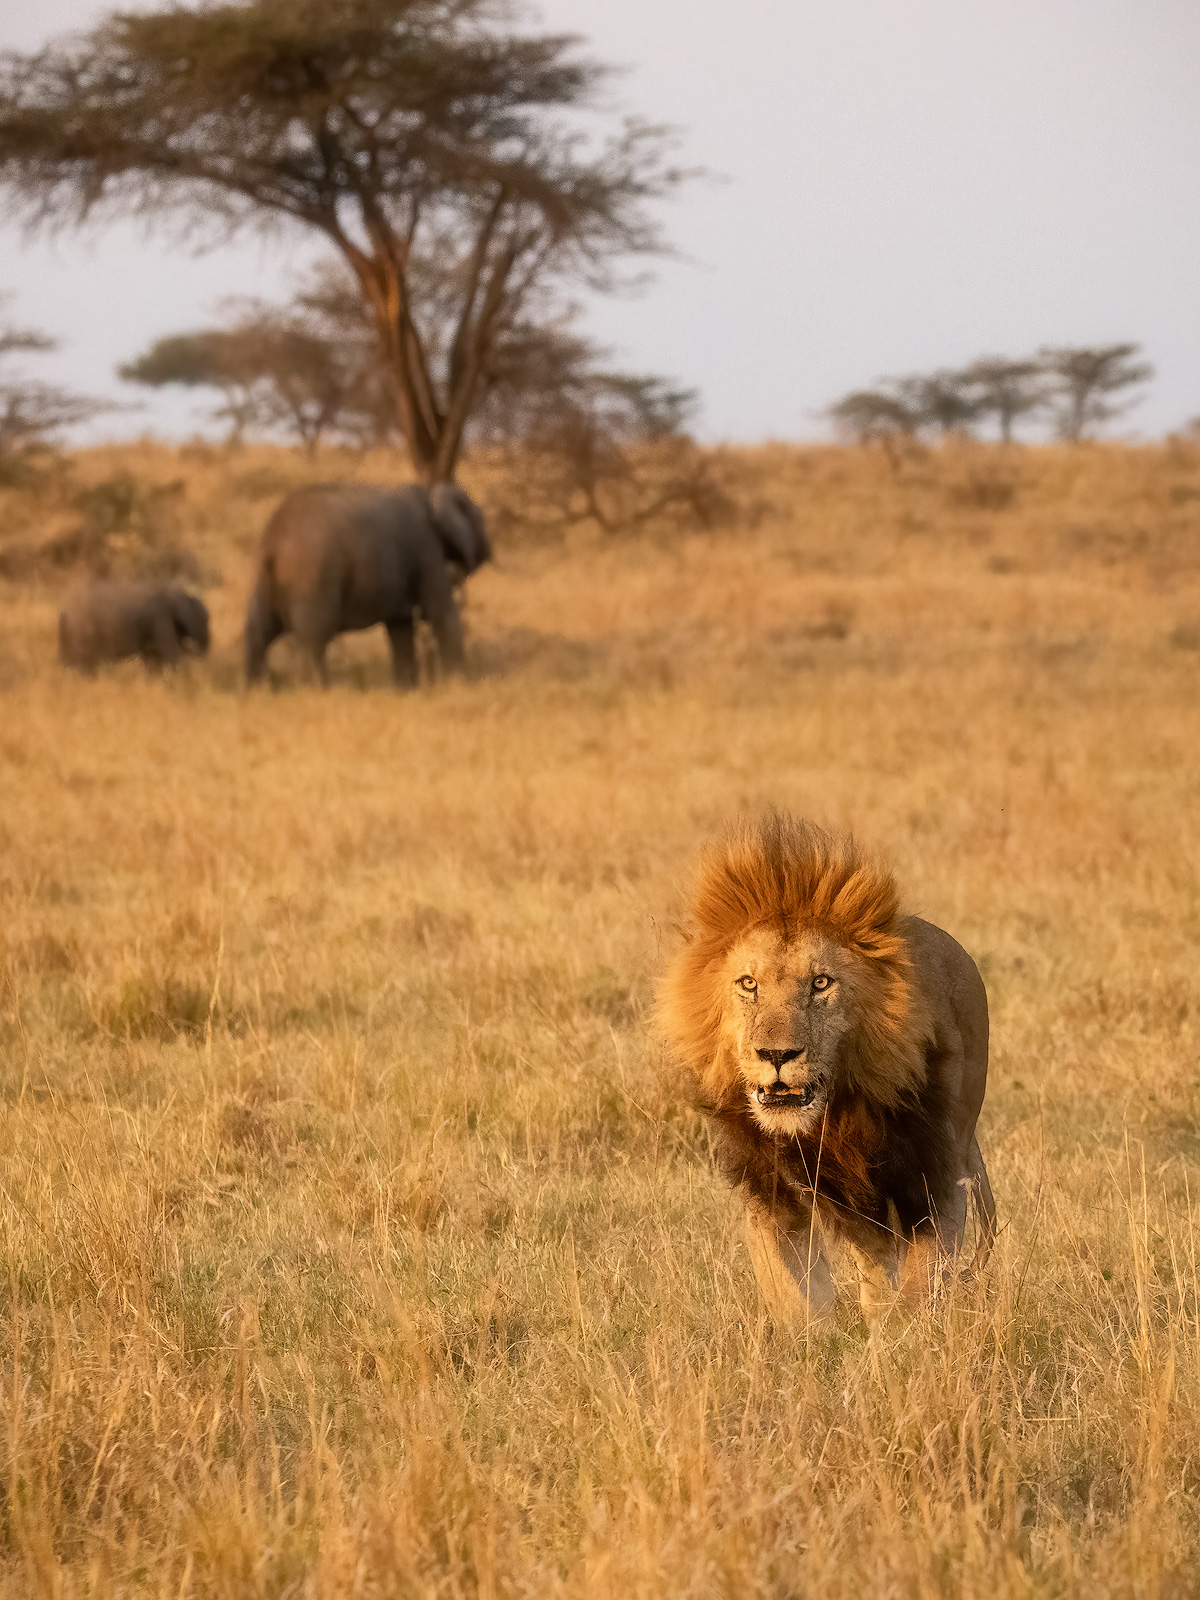 A stressed, older male lion being chased out of his territory by a younger male.